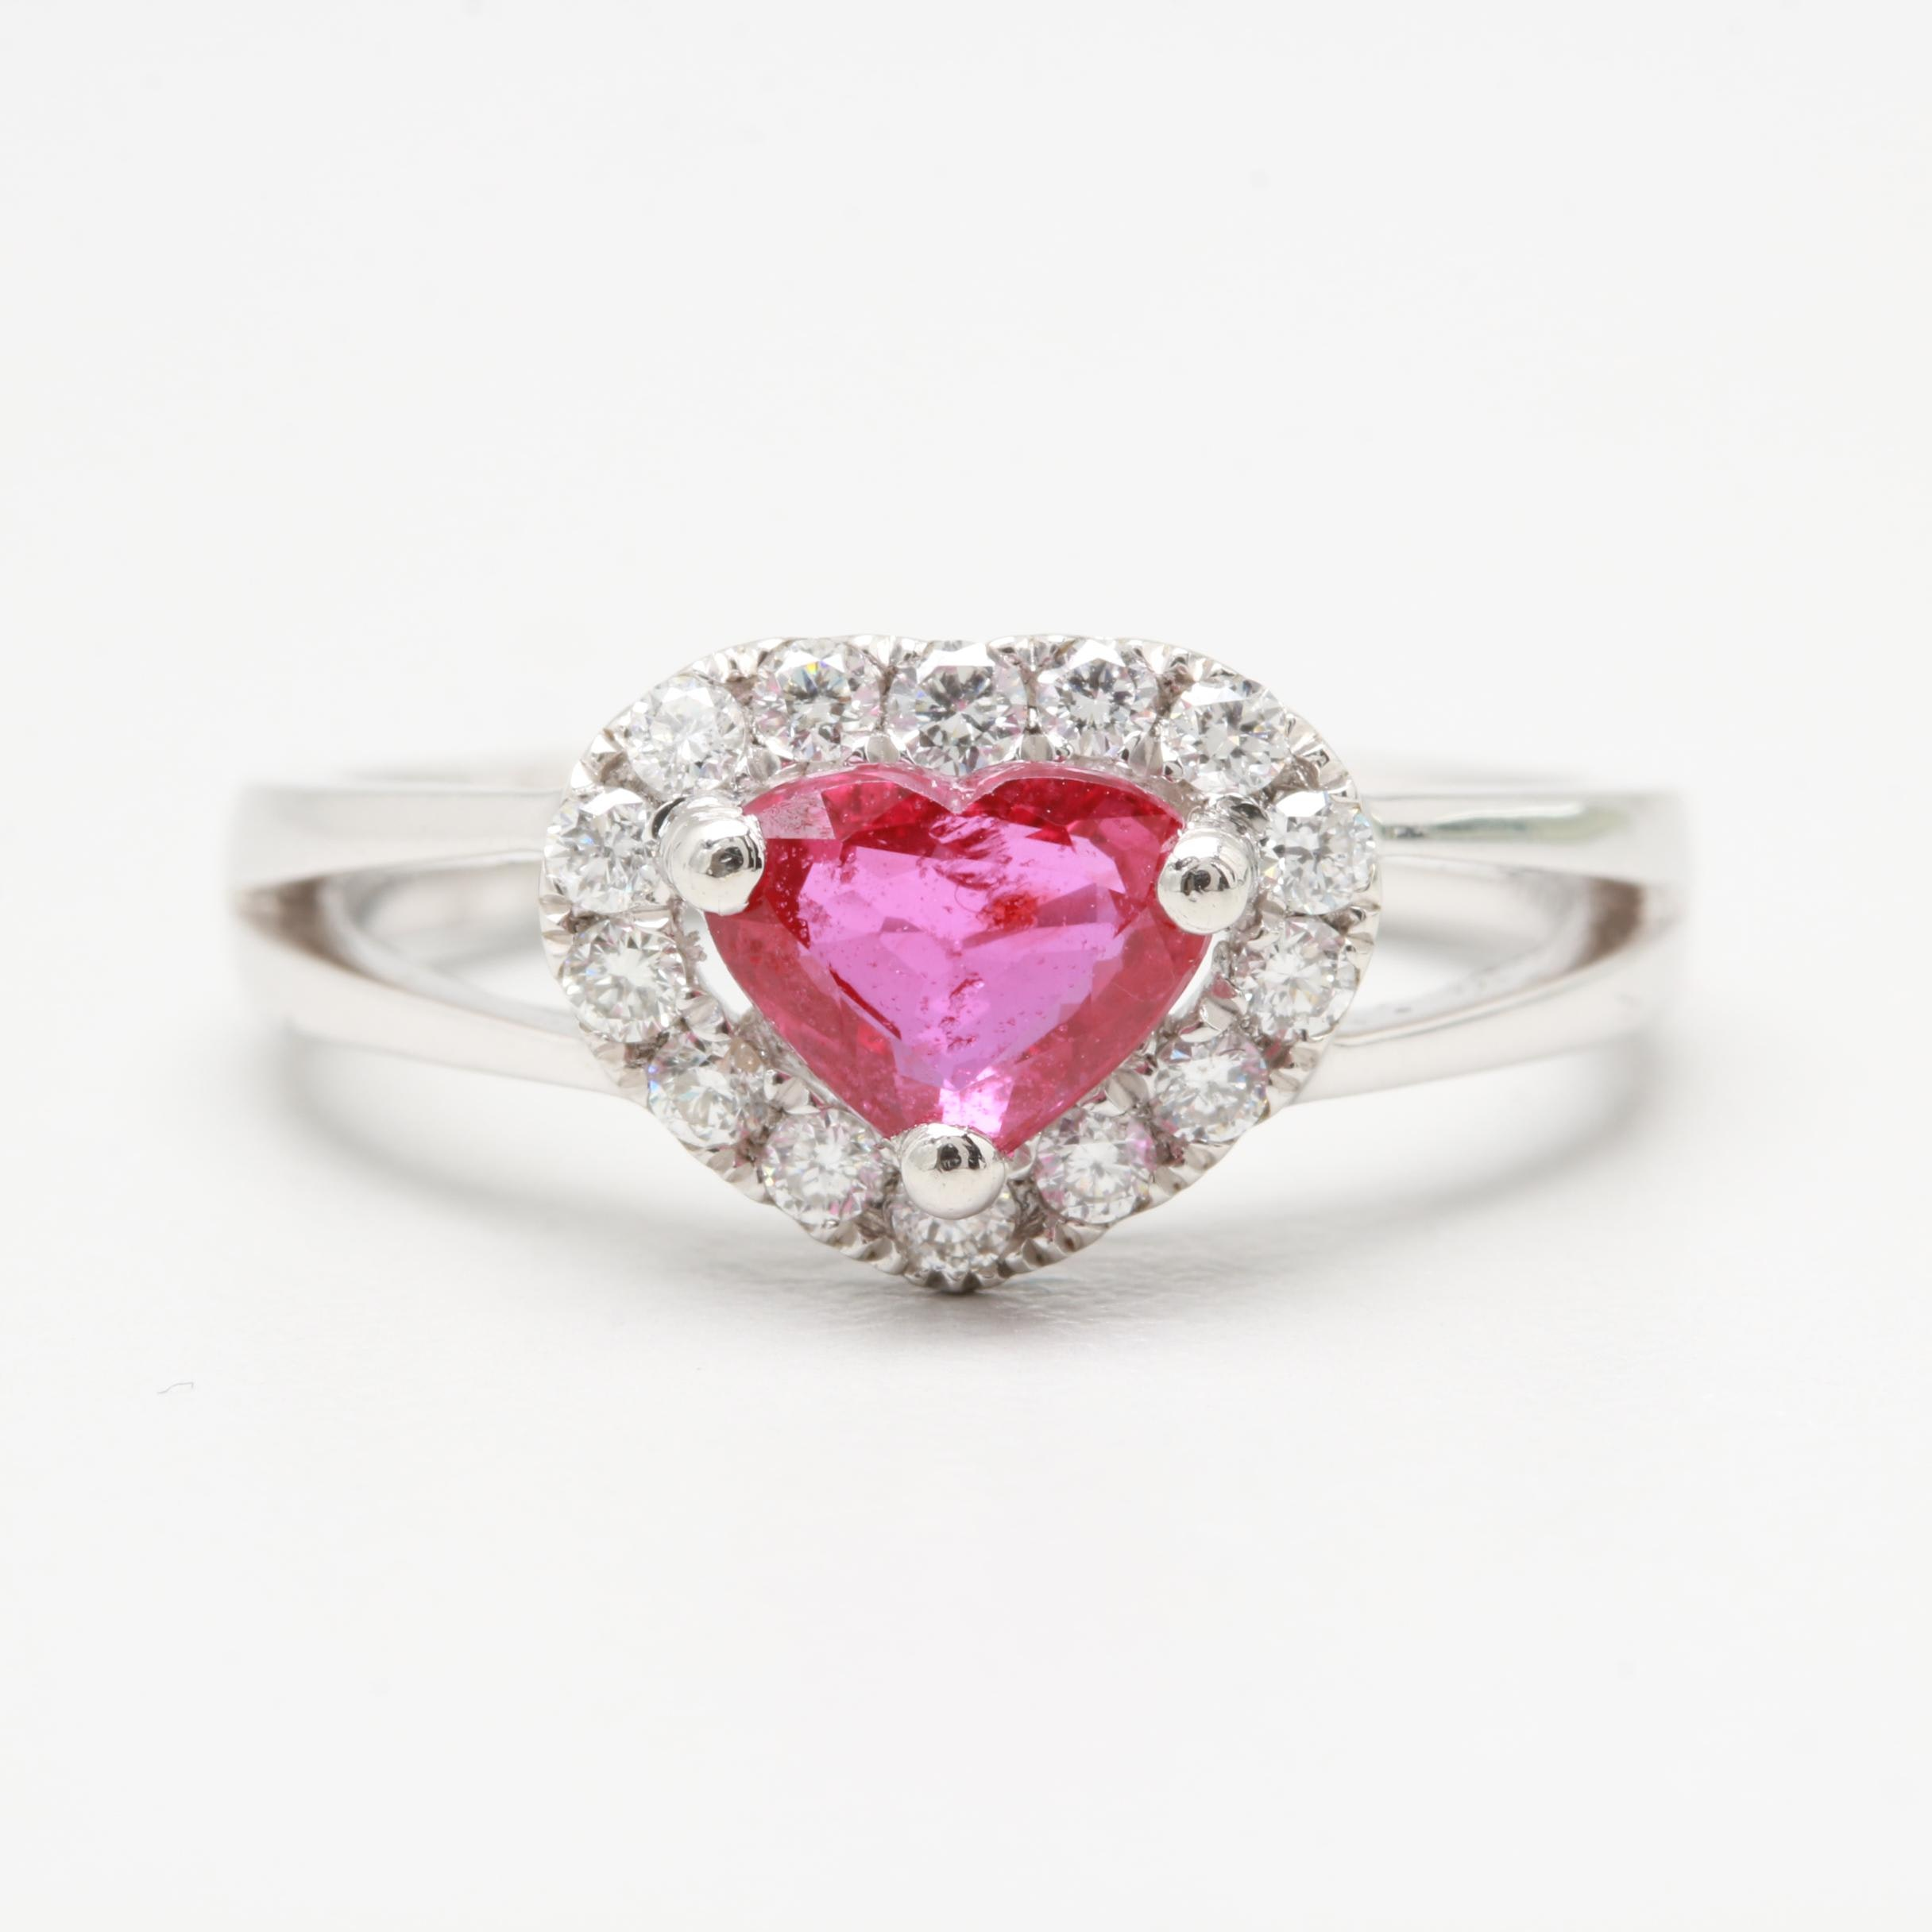 Platinum Untreated 1.02 CT Ruby and Diamond Ring With GIA Report